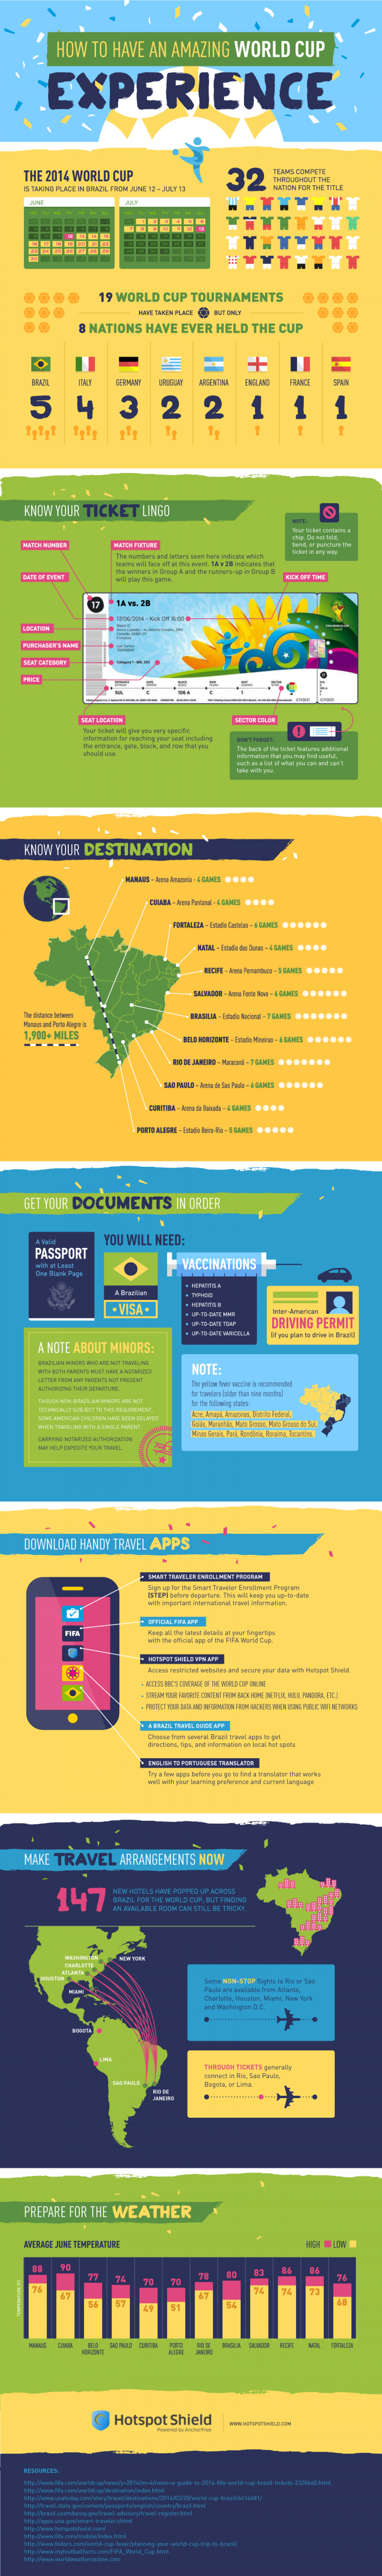 How to Have an Amazing World Cup Experience Infographic